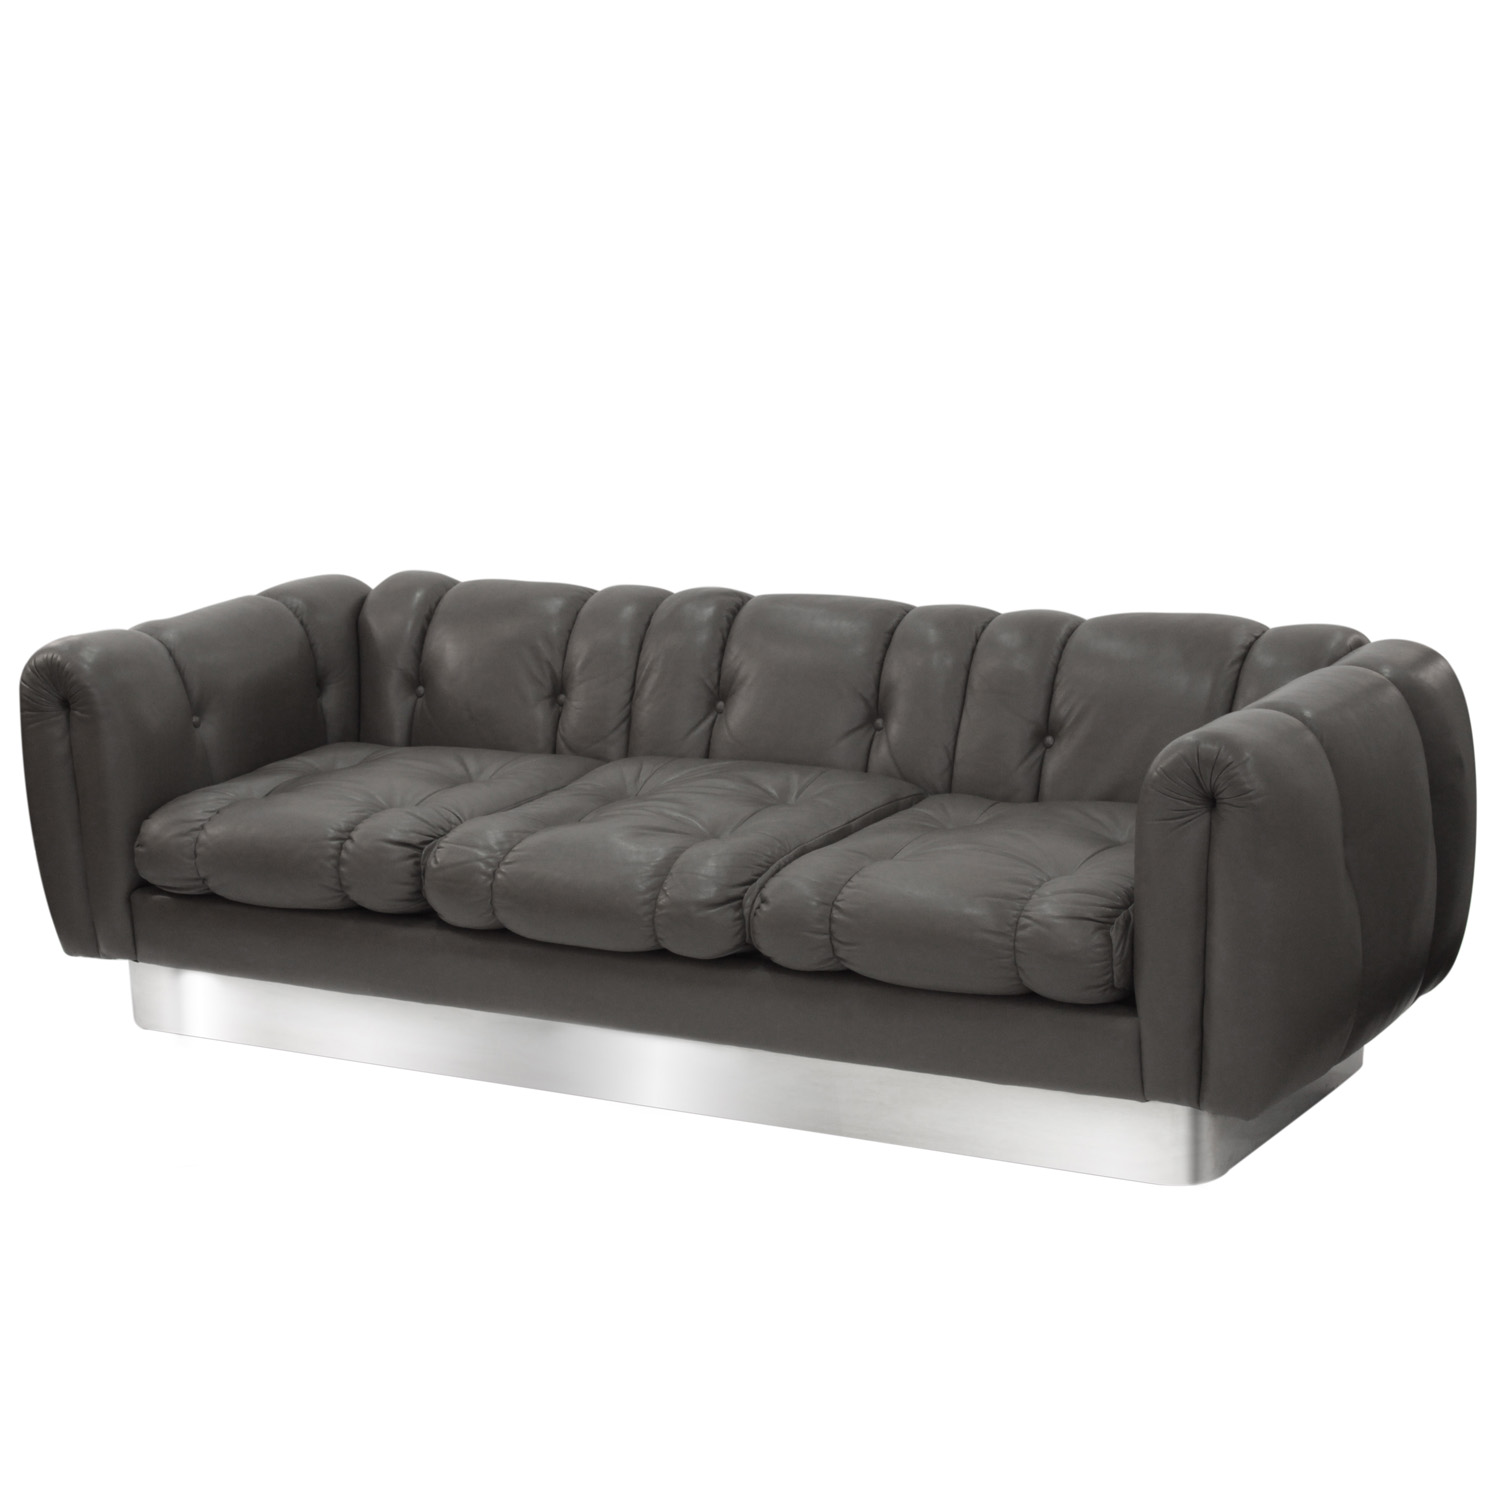 Pace 95 putty leather steel base sofa84 hires.jpg